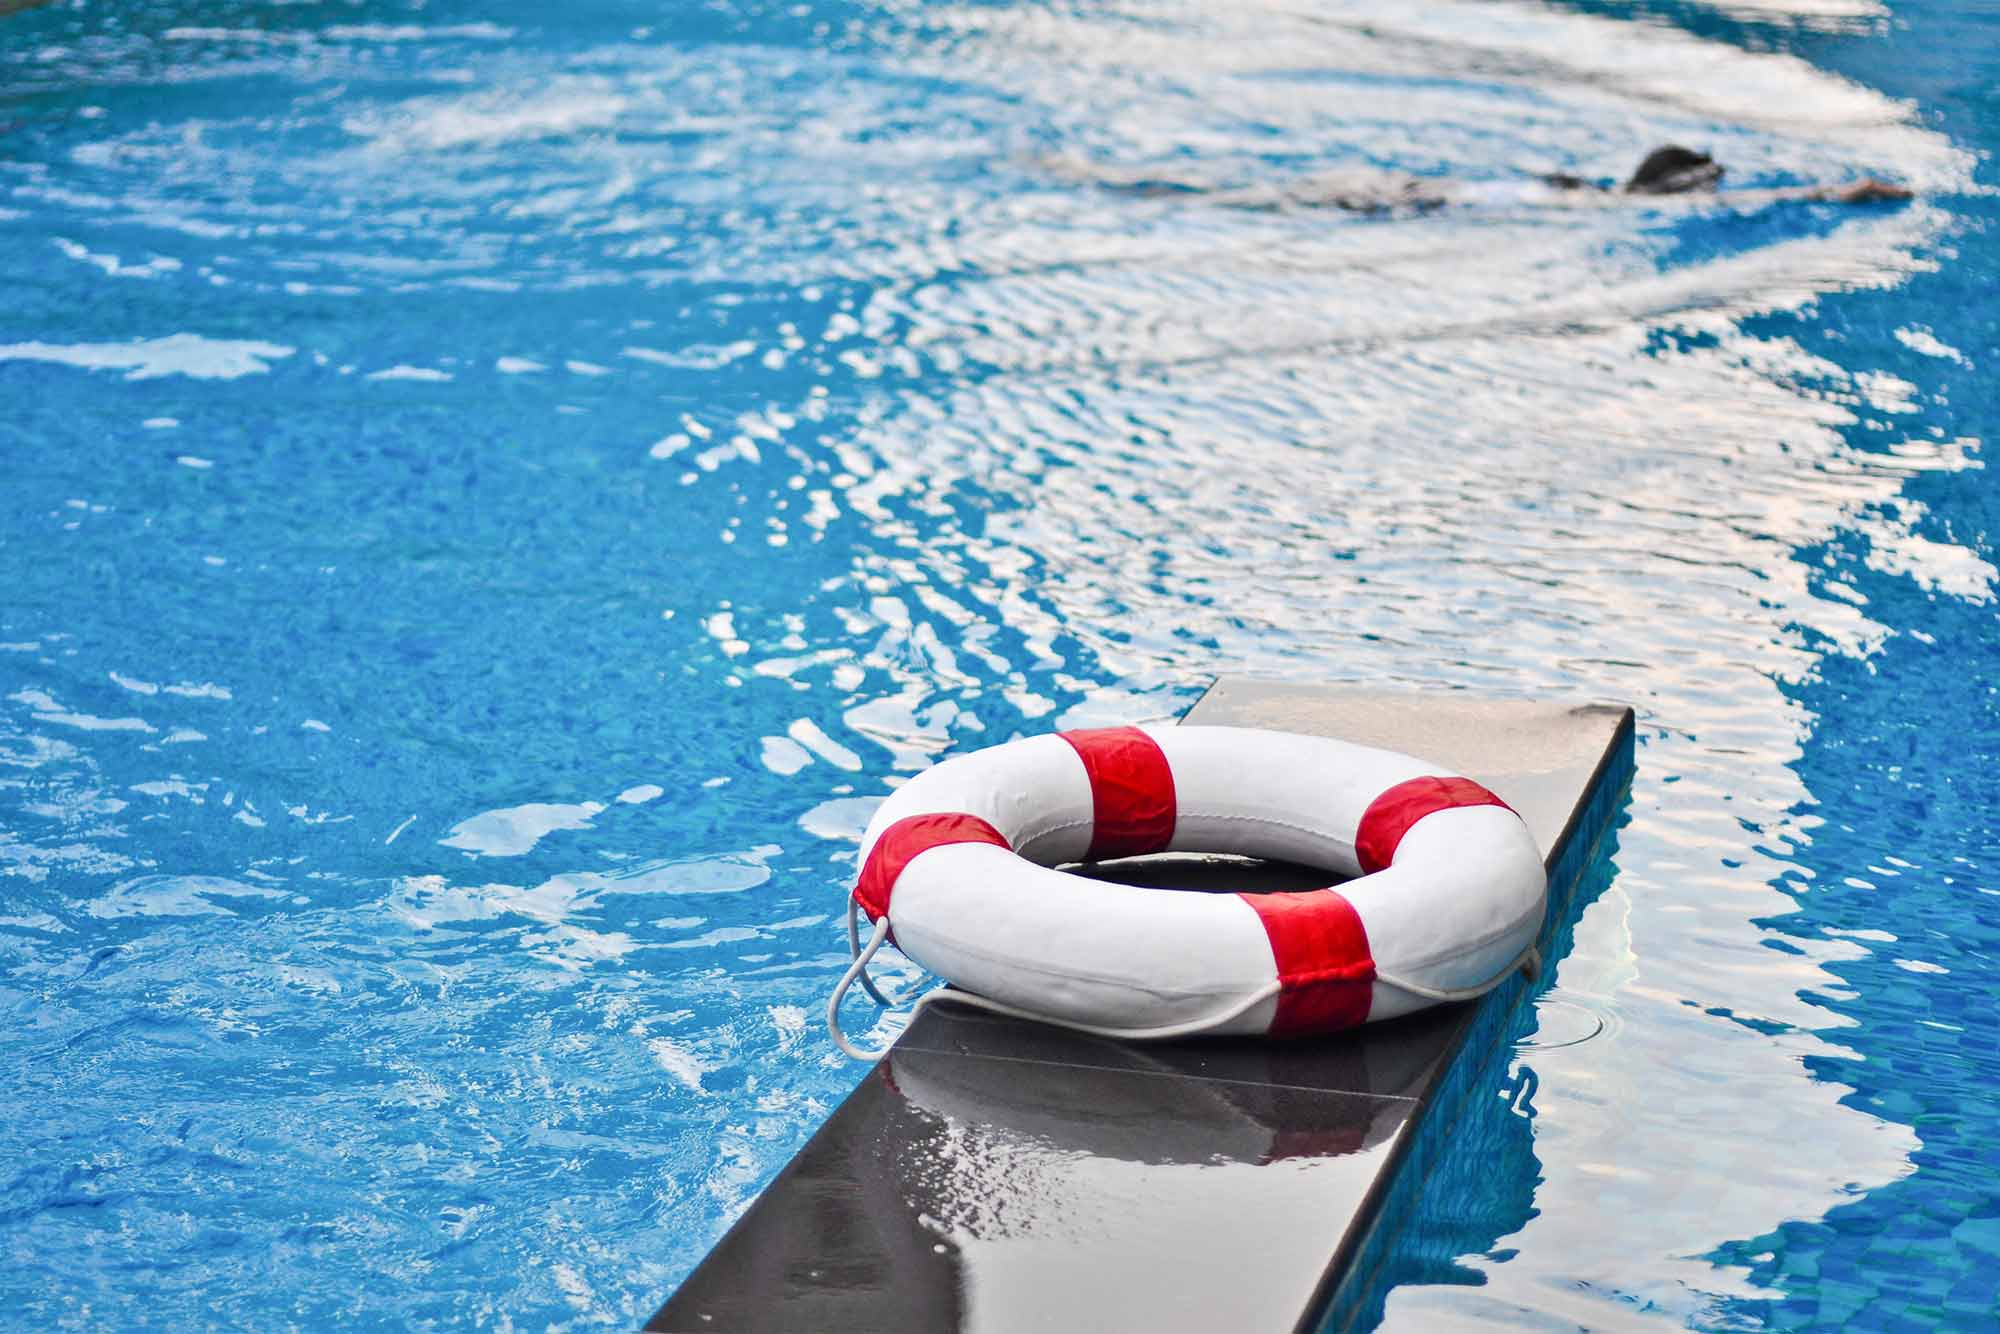 Contact Checkmate Safety for Pool Safety inspections